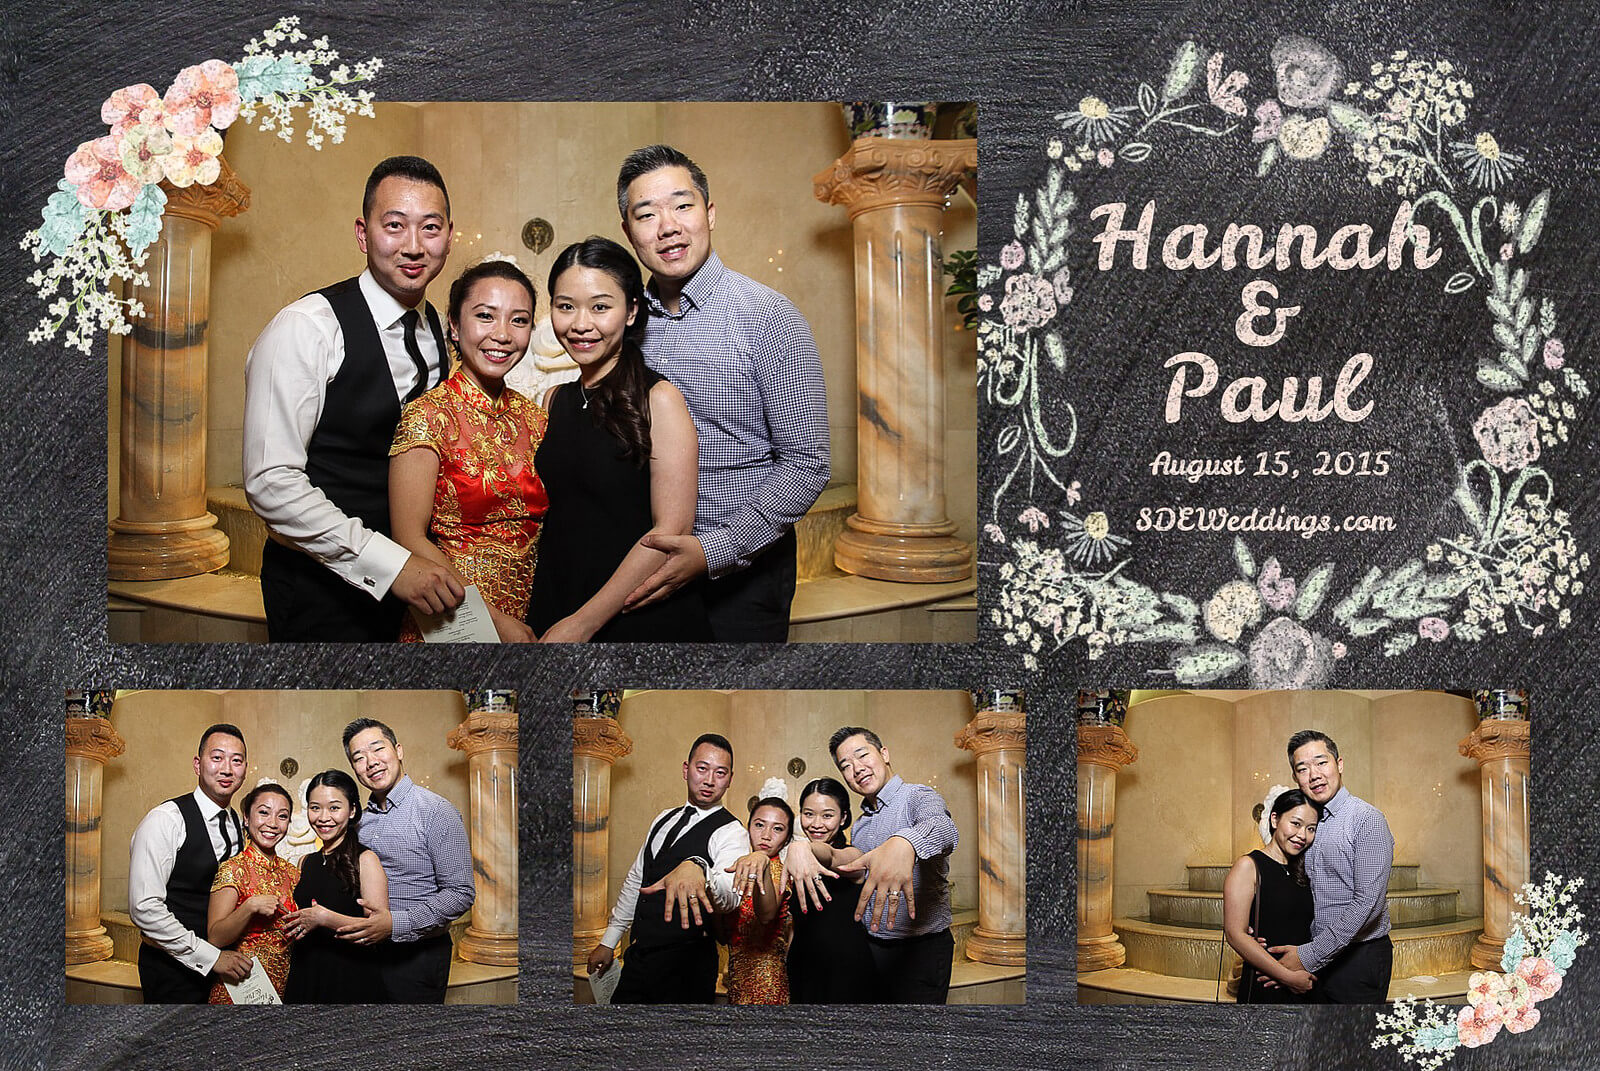 Markham Premiere Banquet Wedding Photobooth Rental 10